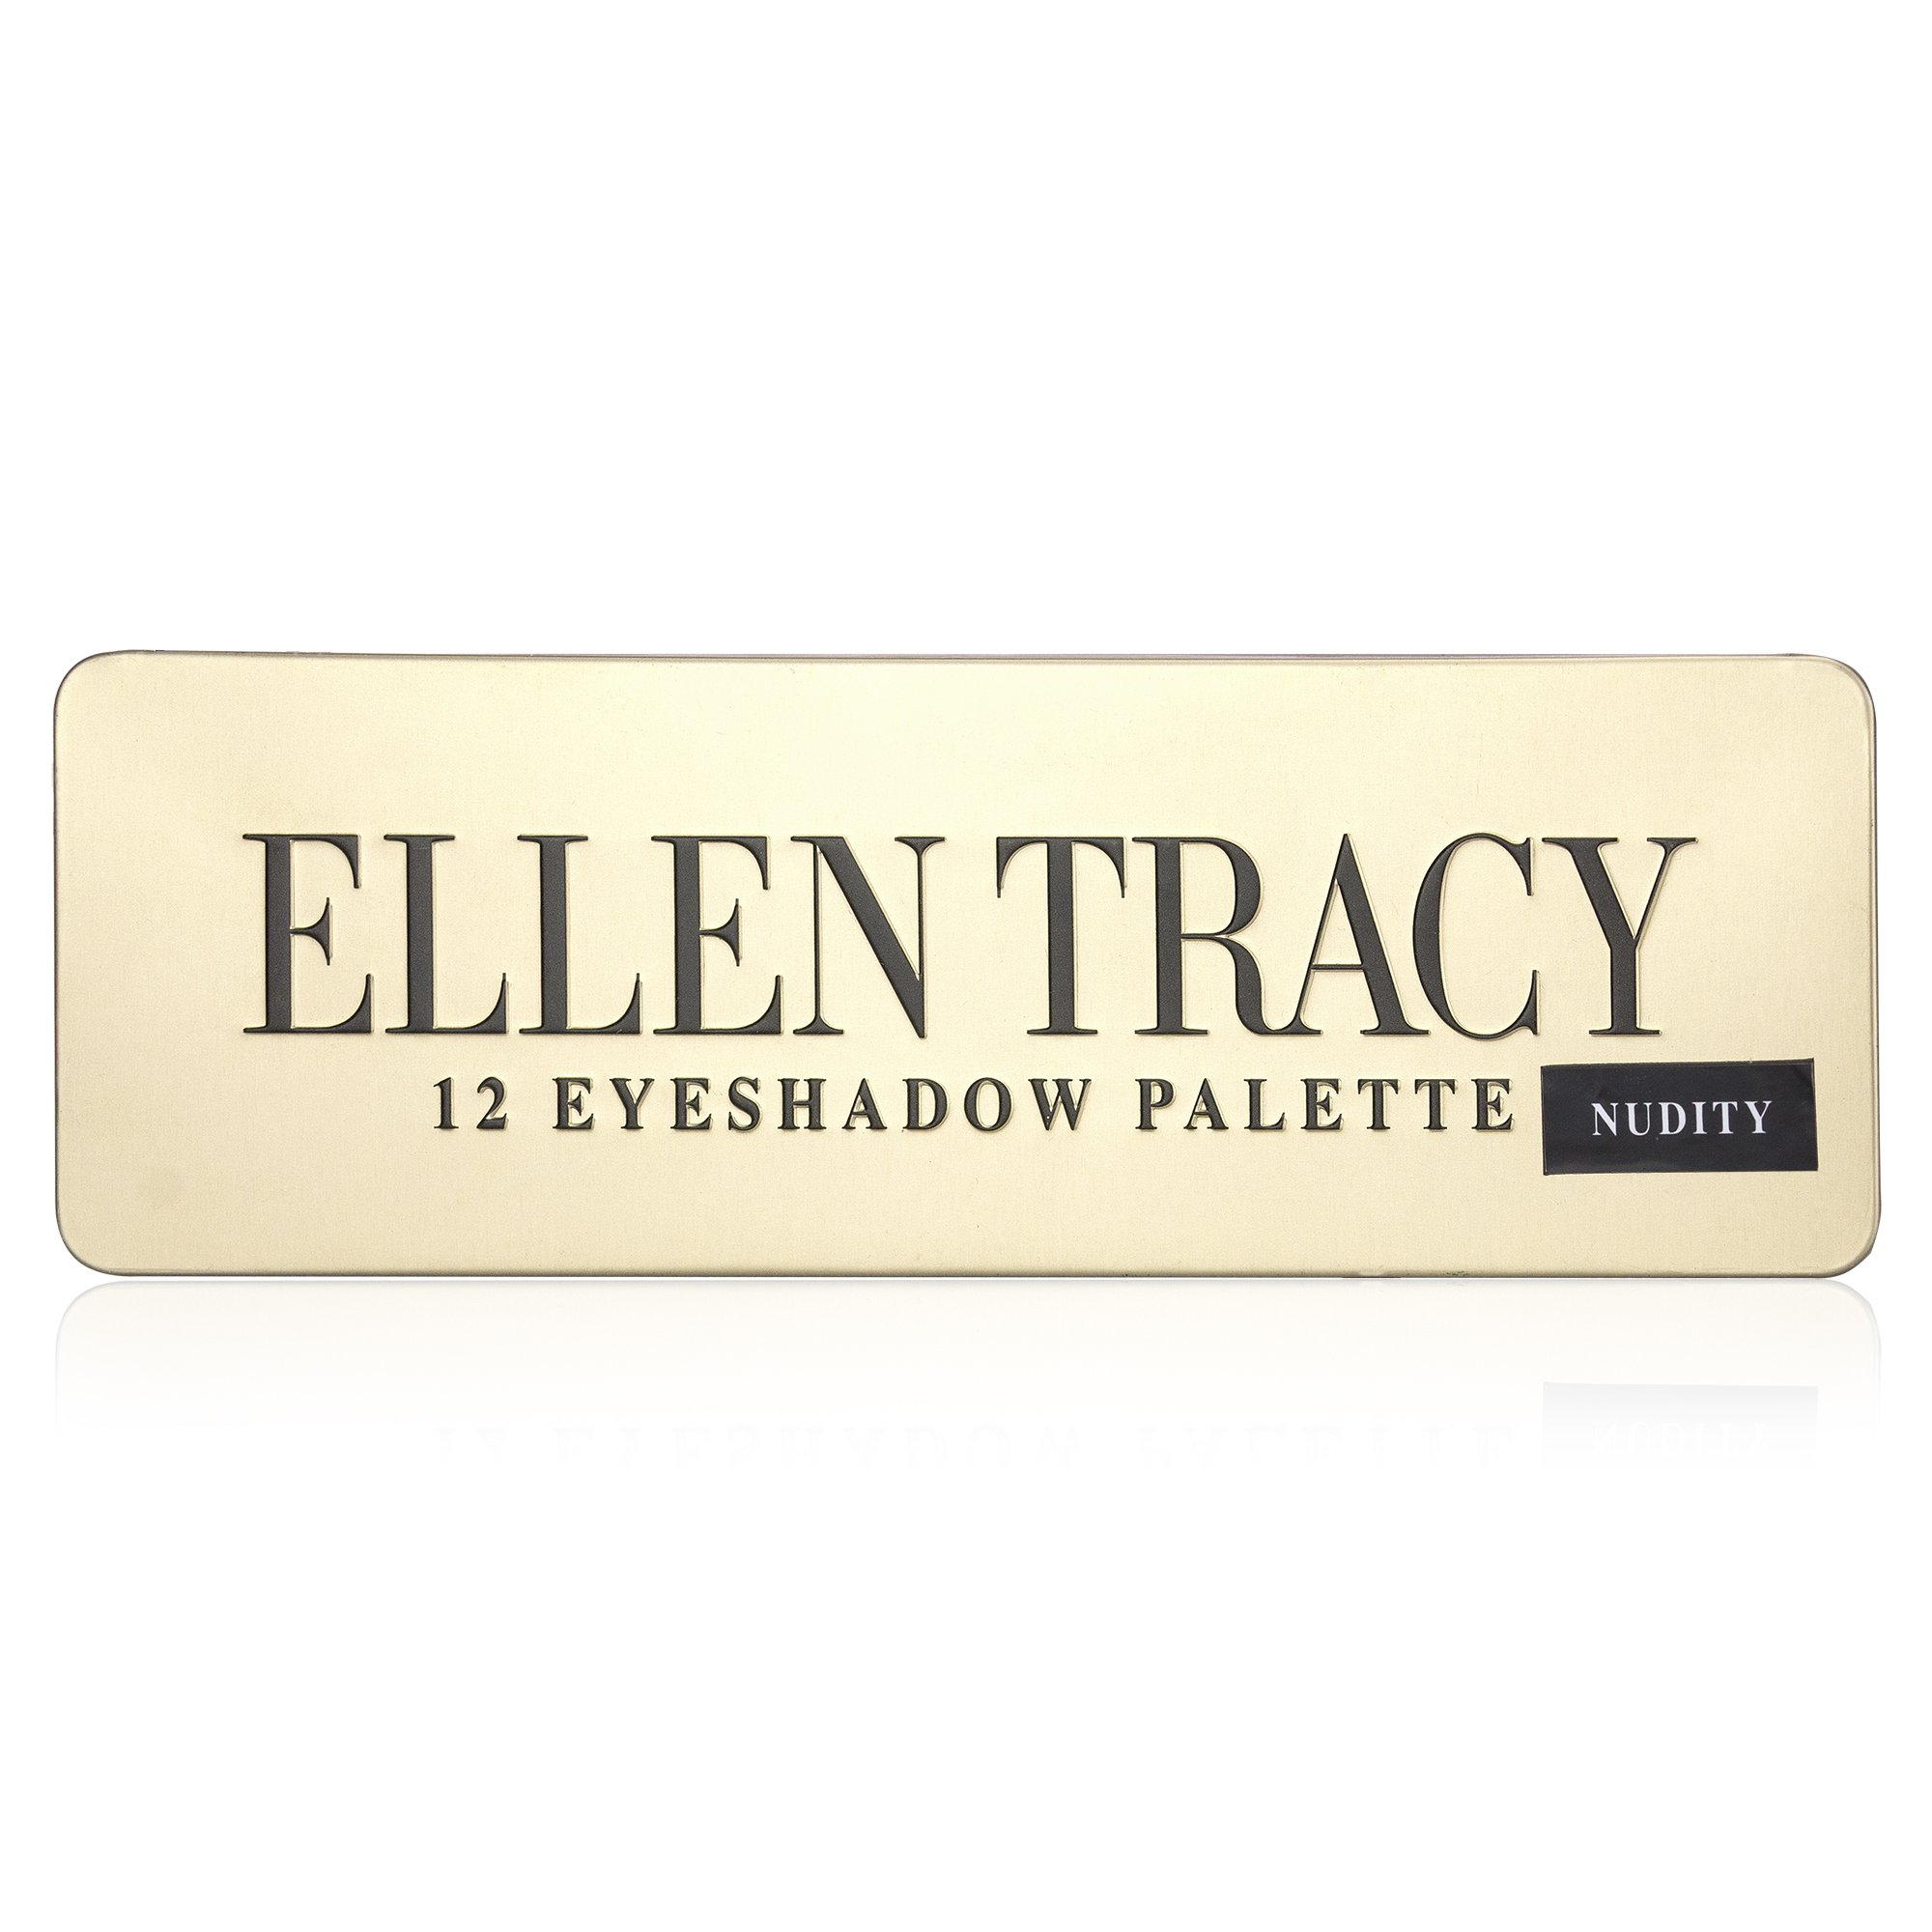 Ellen Tracy Luxurious 12-Well Eye Shadow Palette in Tin Box, Easy to Apply, Everyday Wear, for Women, Teen Girls, Nude Colors, Natural, Polished, Sun-Kissed Look, with Eyeshadow Brush Included